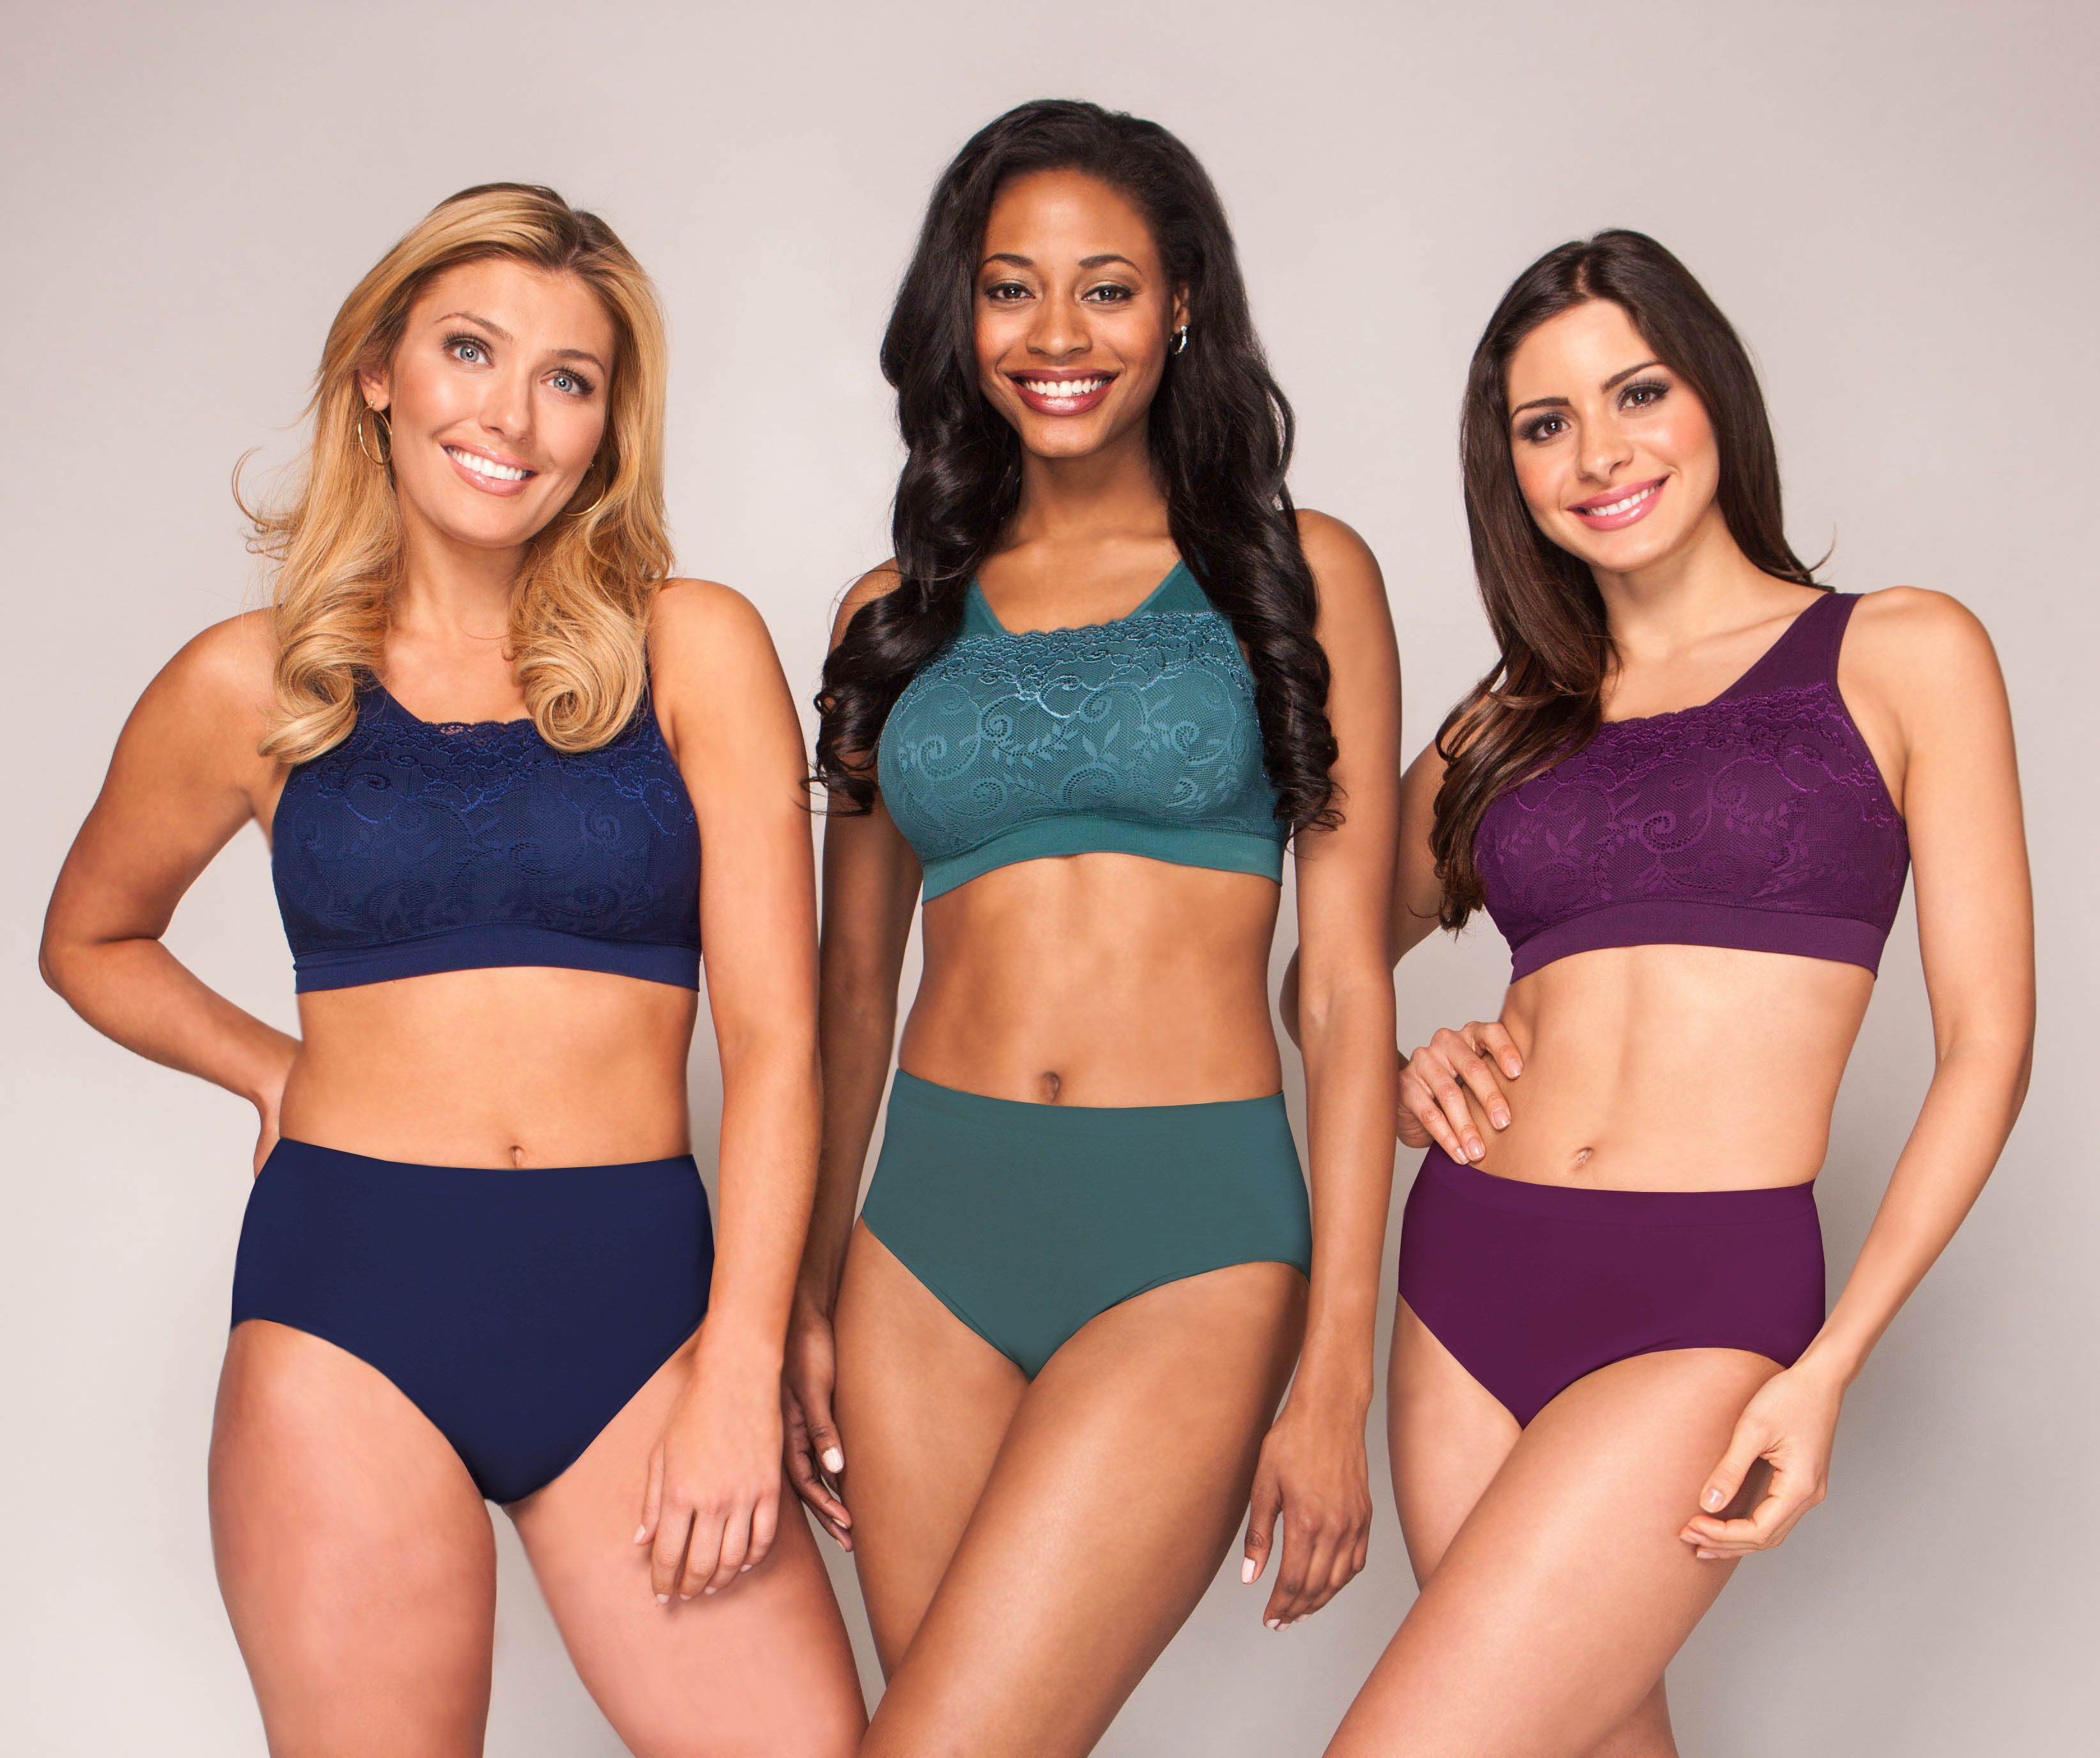 6912bb7297 Try the Milana Bra in beautiful colors to peek out from under low cut tops.  Support and style in one!  comfort  seamlessbra  seamless  colorbra